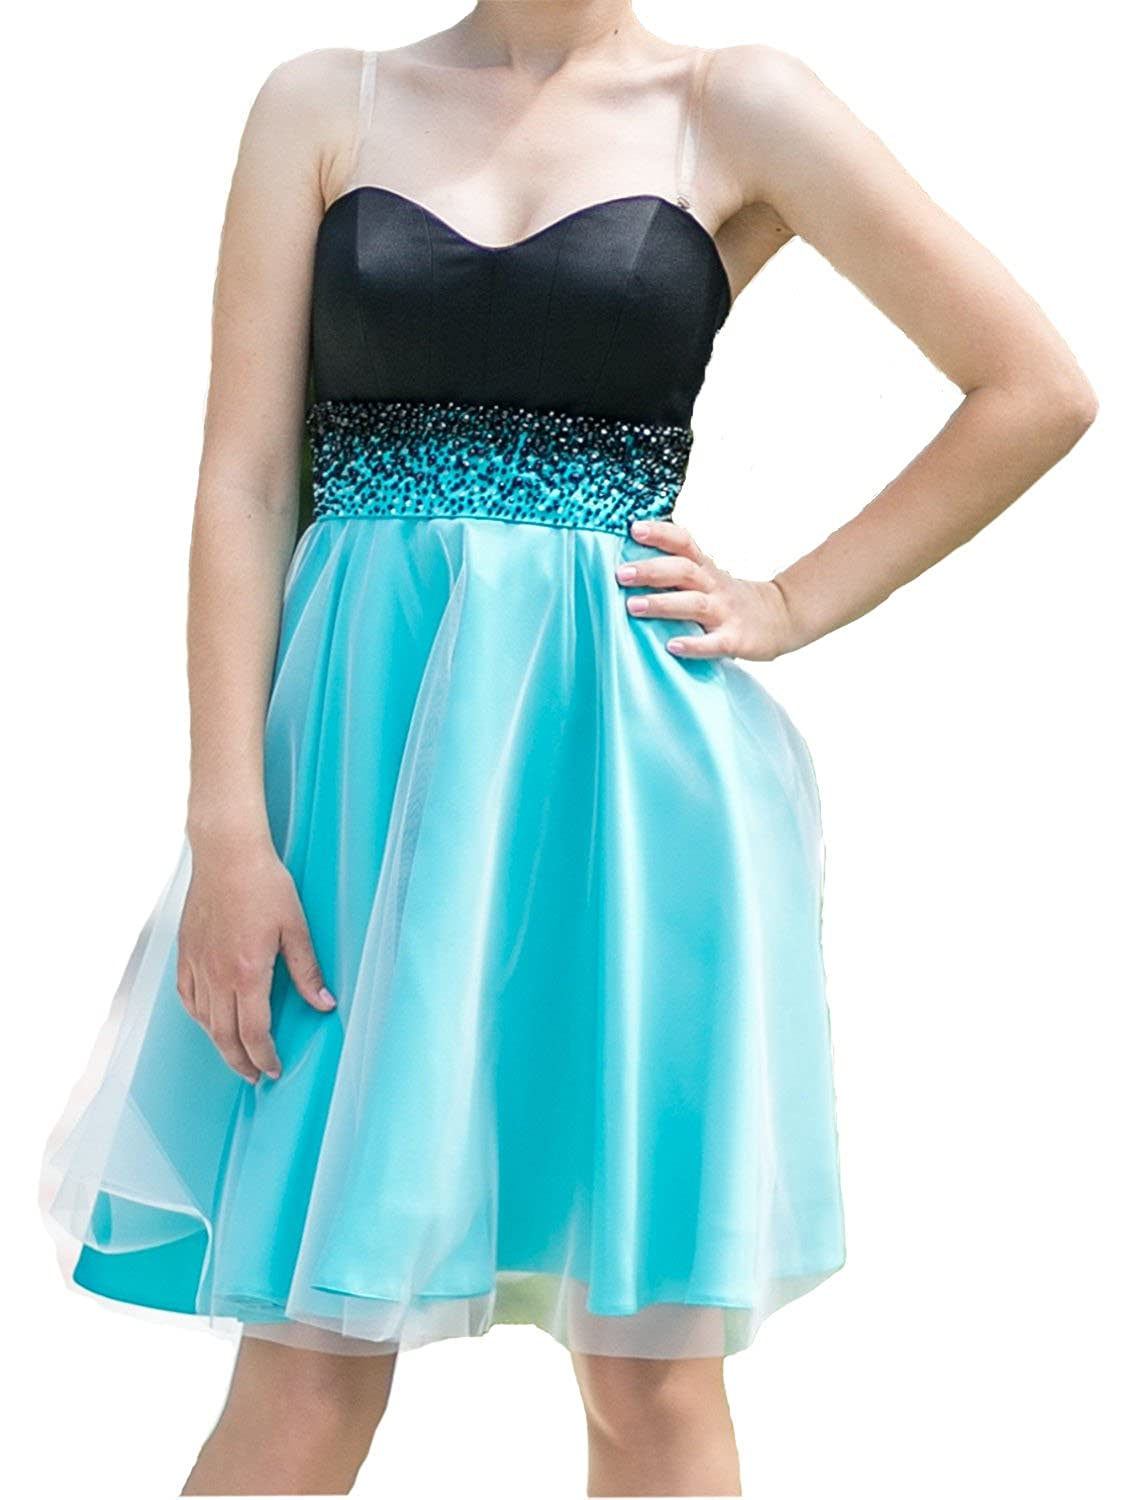 LM Women's Short Strapless Black And Blue Prom Party Homecoming Dresses LM089